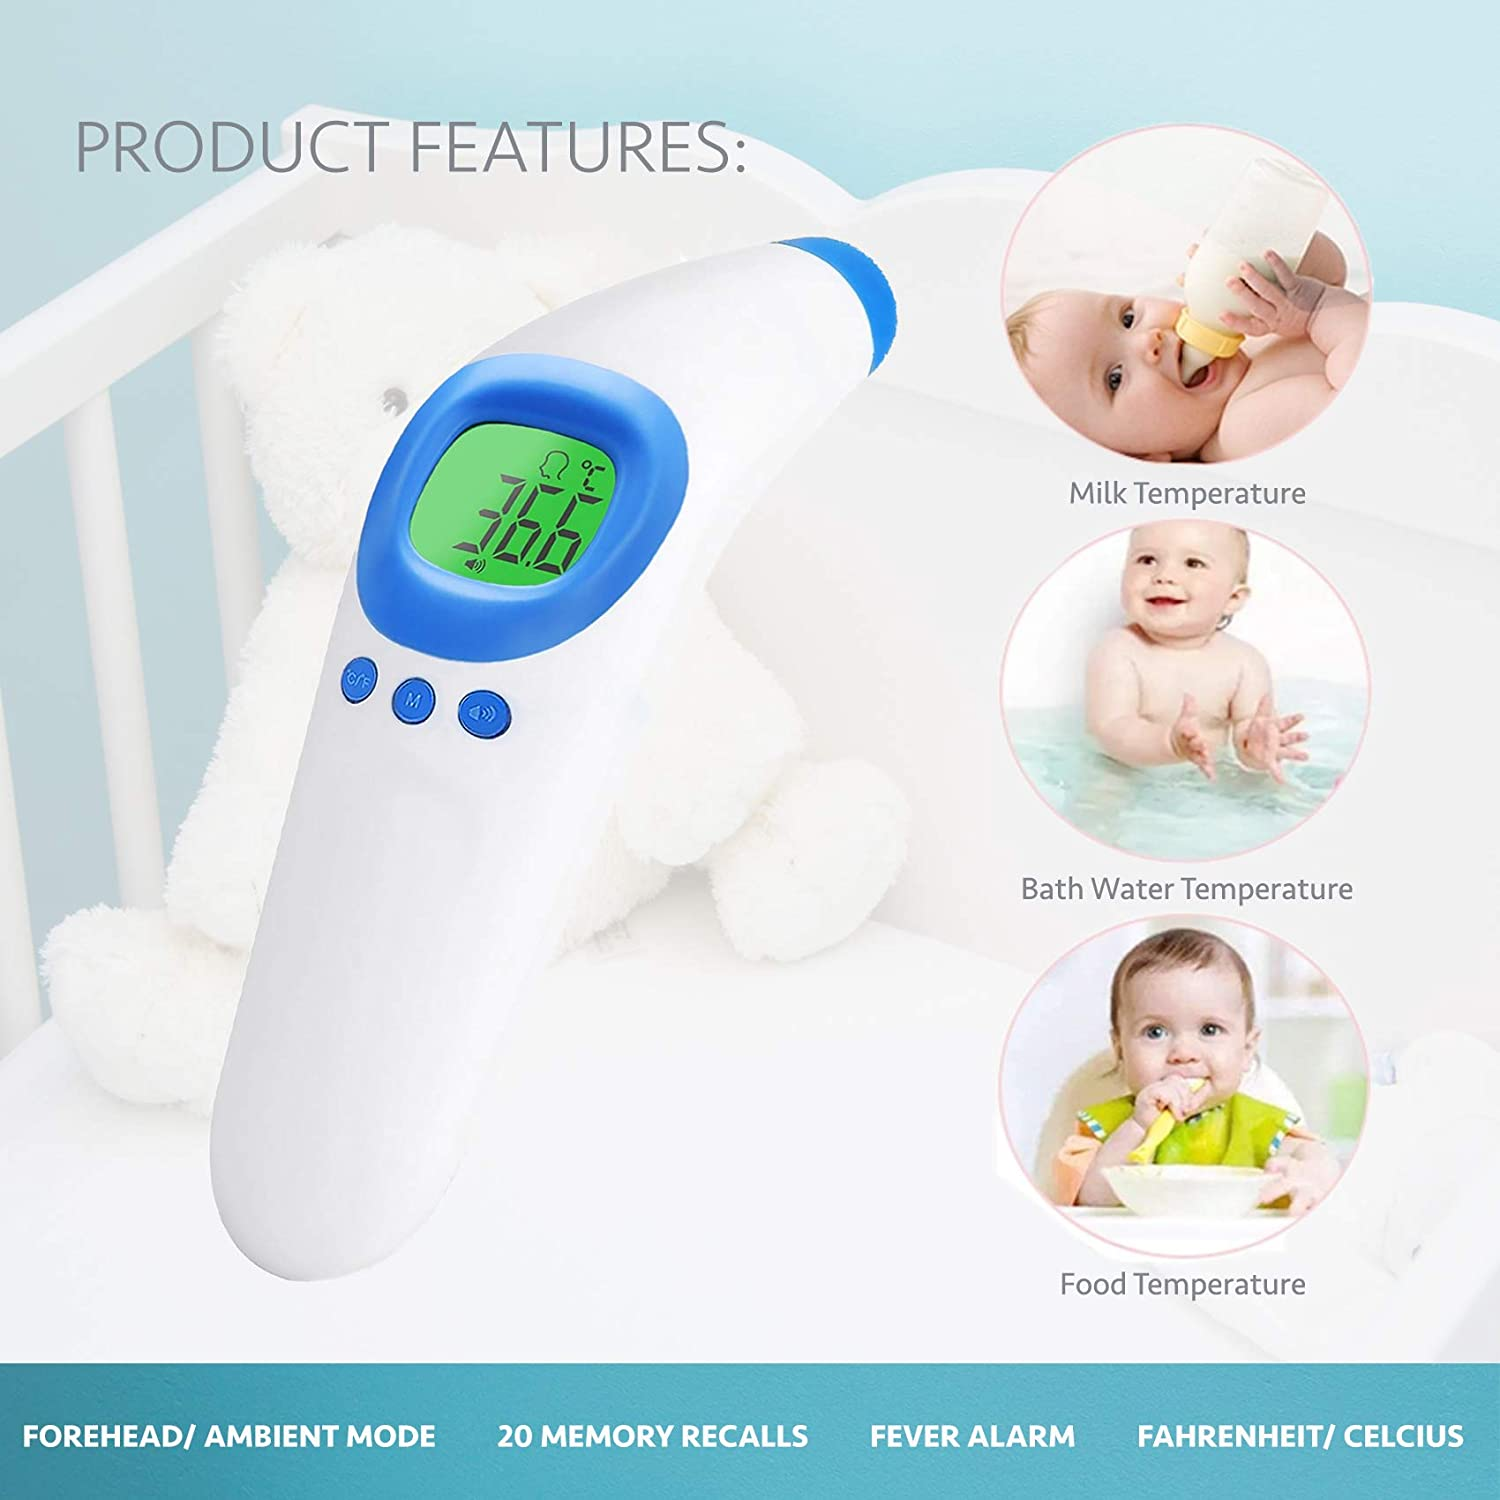 No Touch Infrared Digital Thermometer for Milk, Water & Room. Instant Fever Indicator in Celcius & Fahrenheit, Termometro Digital Baby by eillüm : Baby